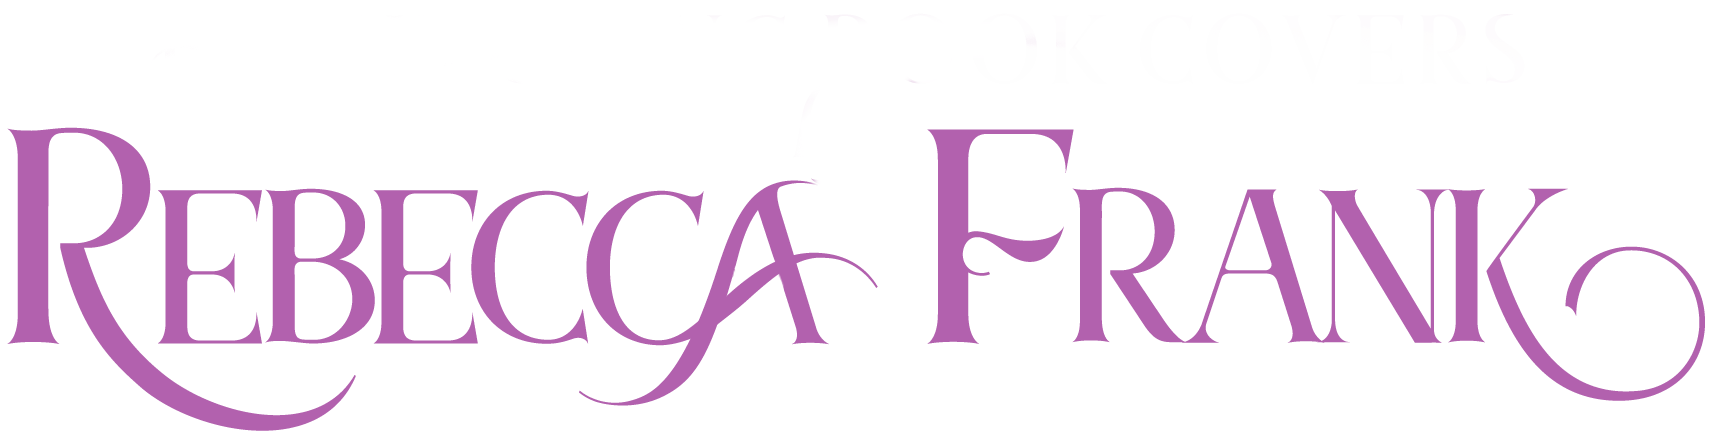 Bewitching Book Covers By Rebecca Frank